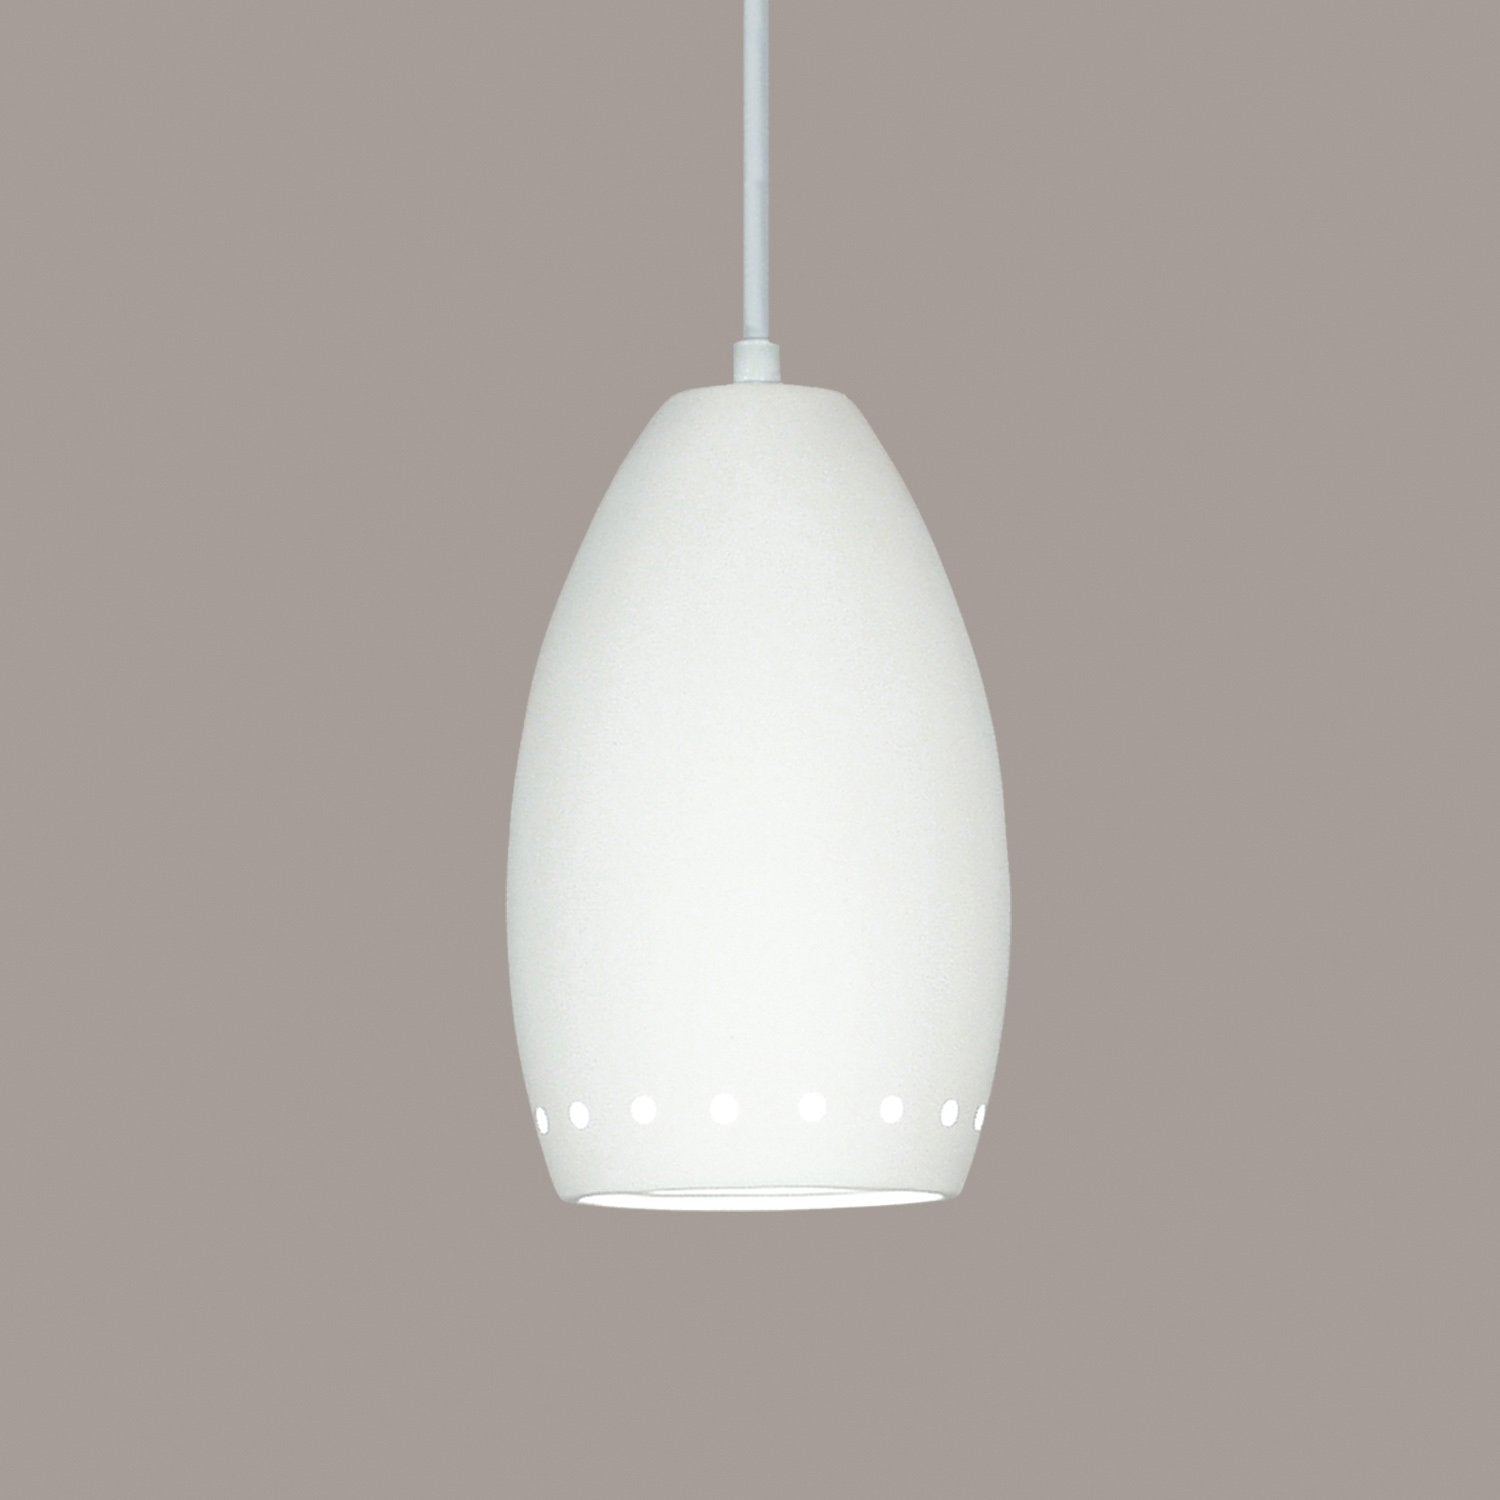 A19 P1503-LEDGU24-A21-BCC Islands of Light Collection Grenada Dusty Teal Finish Pendant